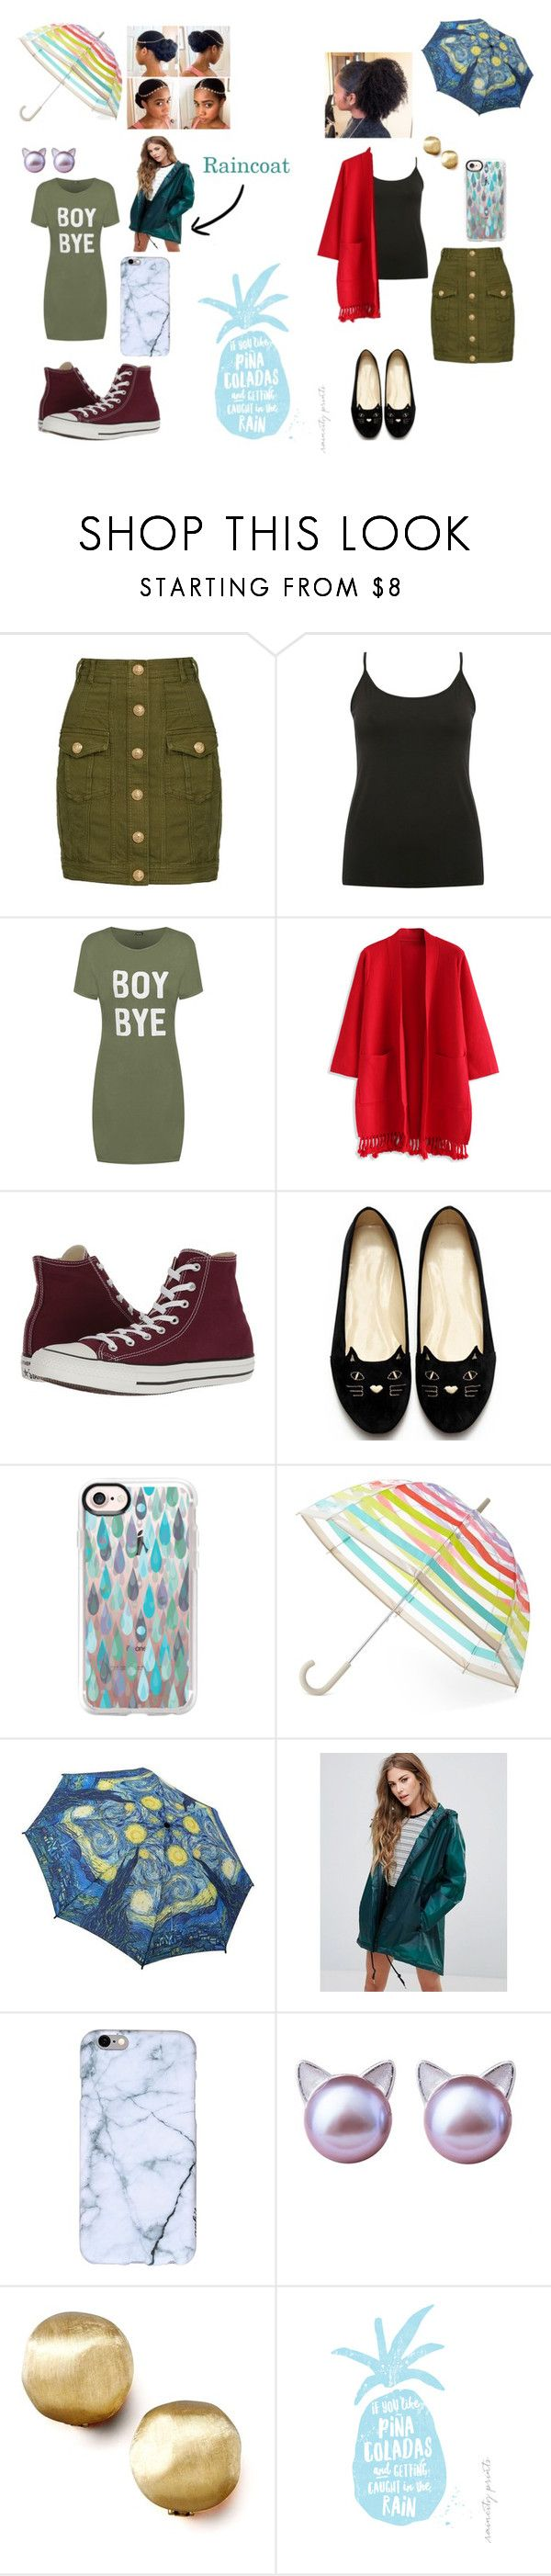 """""""Got caught in the rain"""" by keneko17therainbowprincess on Polyvore featuring Balmain, M&Co, WearAll, Chicwish, Converse, Casetify, Kate Spade, Hunter and Marco Bicego"""